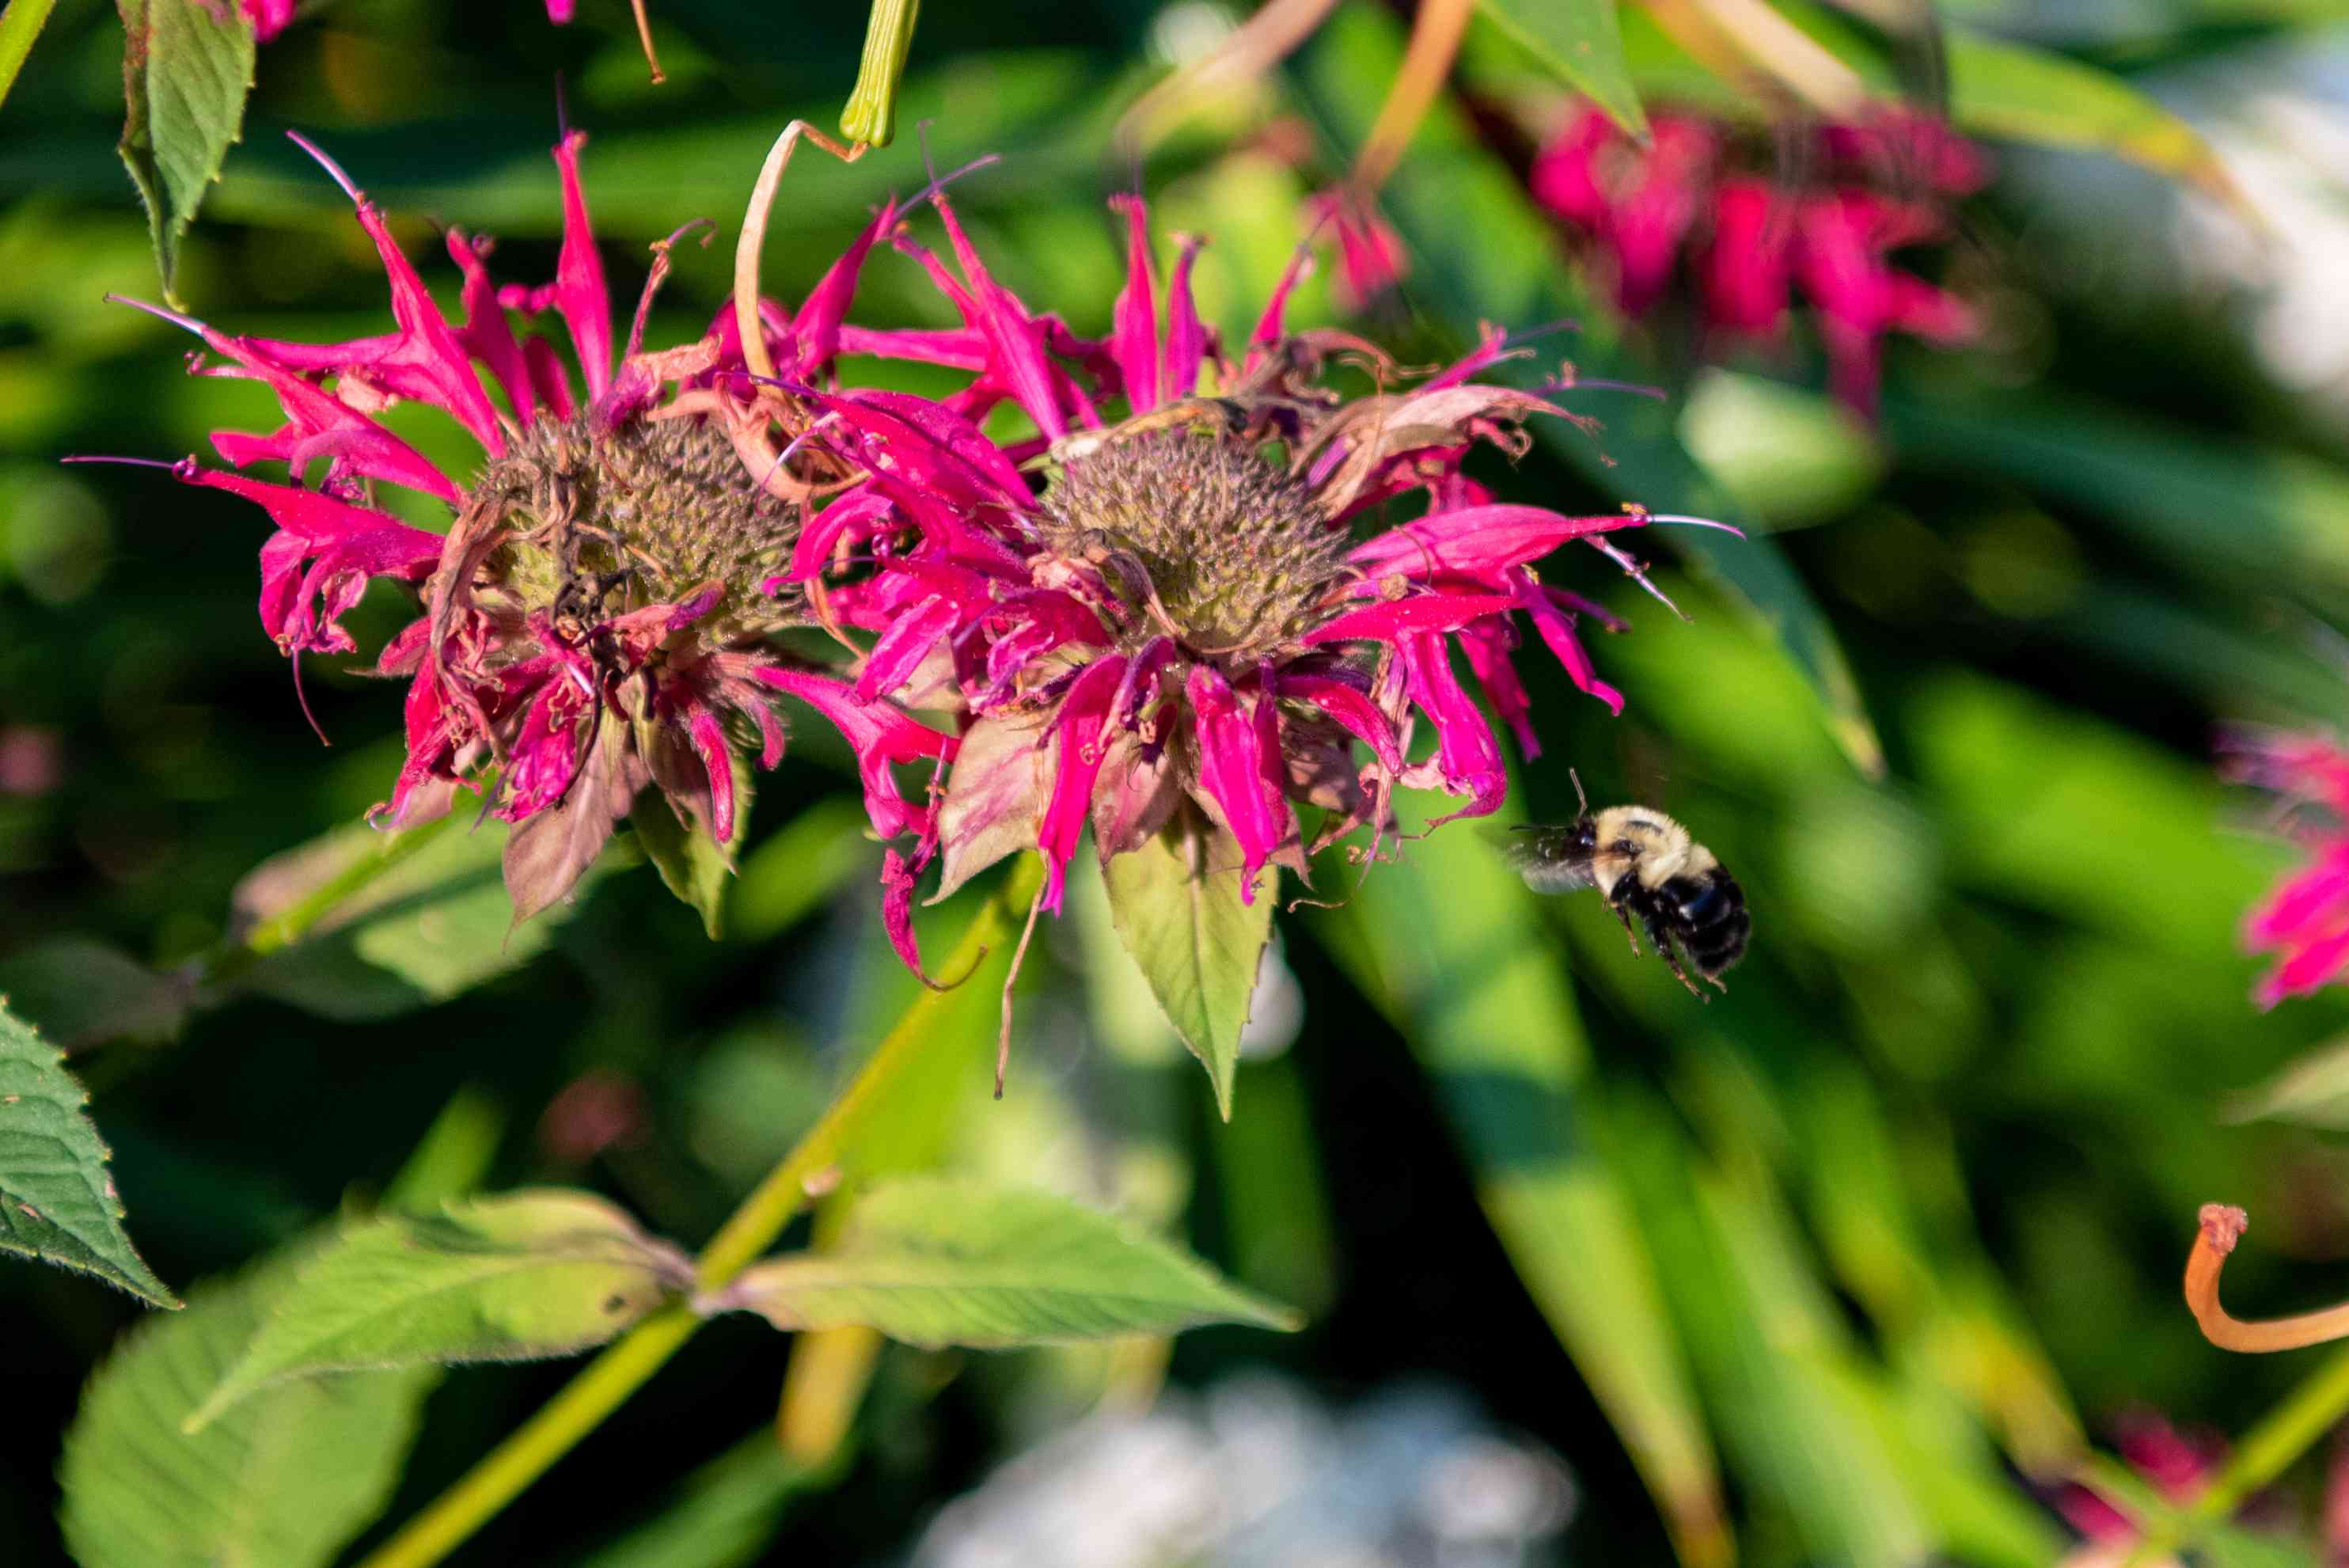 close-up shot of pink flowers with fuzzy bumblebee hovering nearby